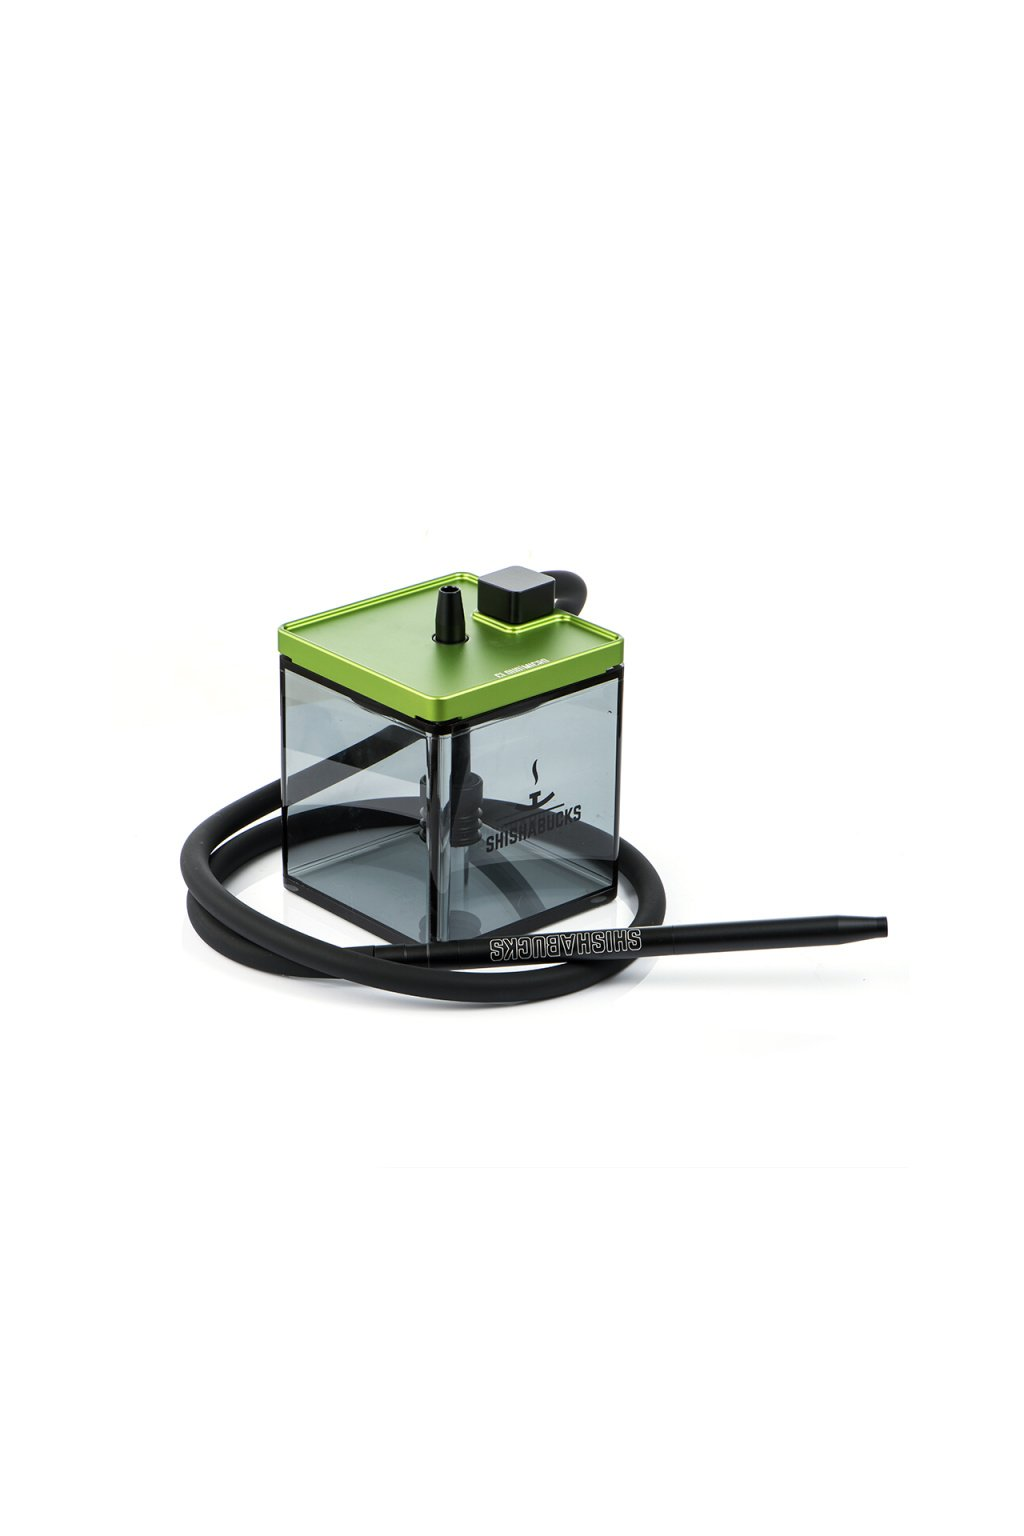 Shishabucks Cloud Micro Green Black 18 cm